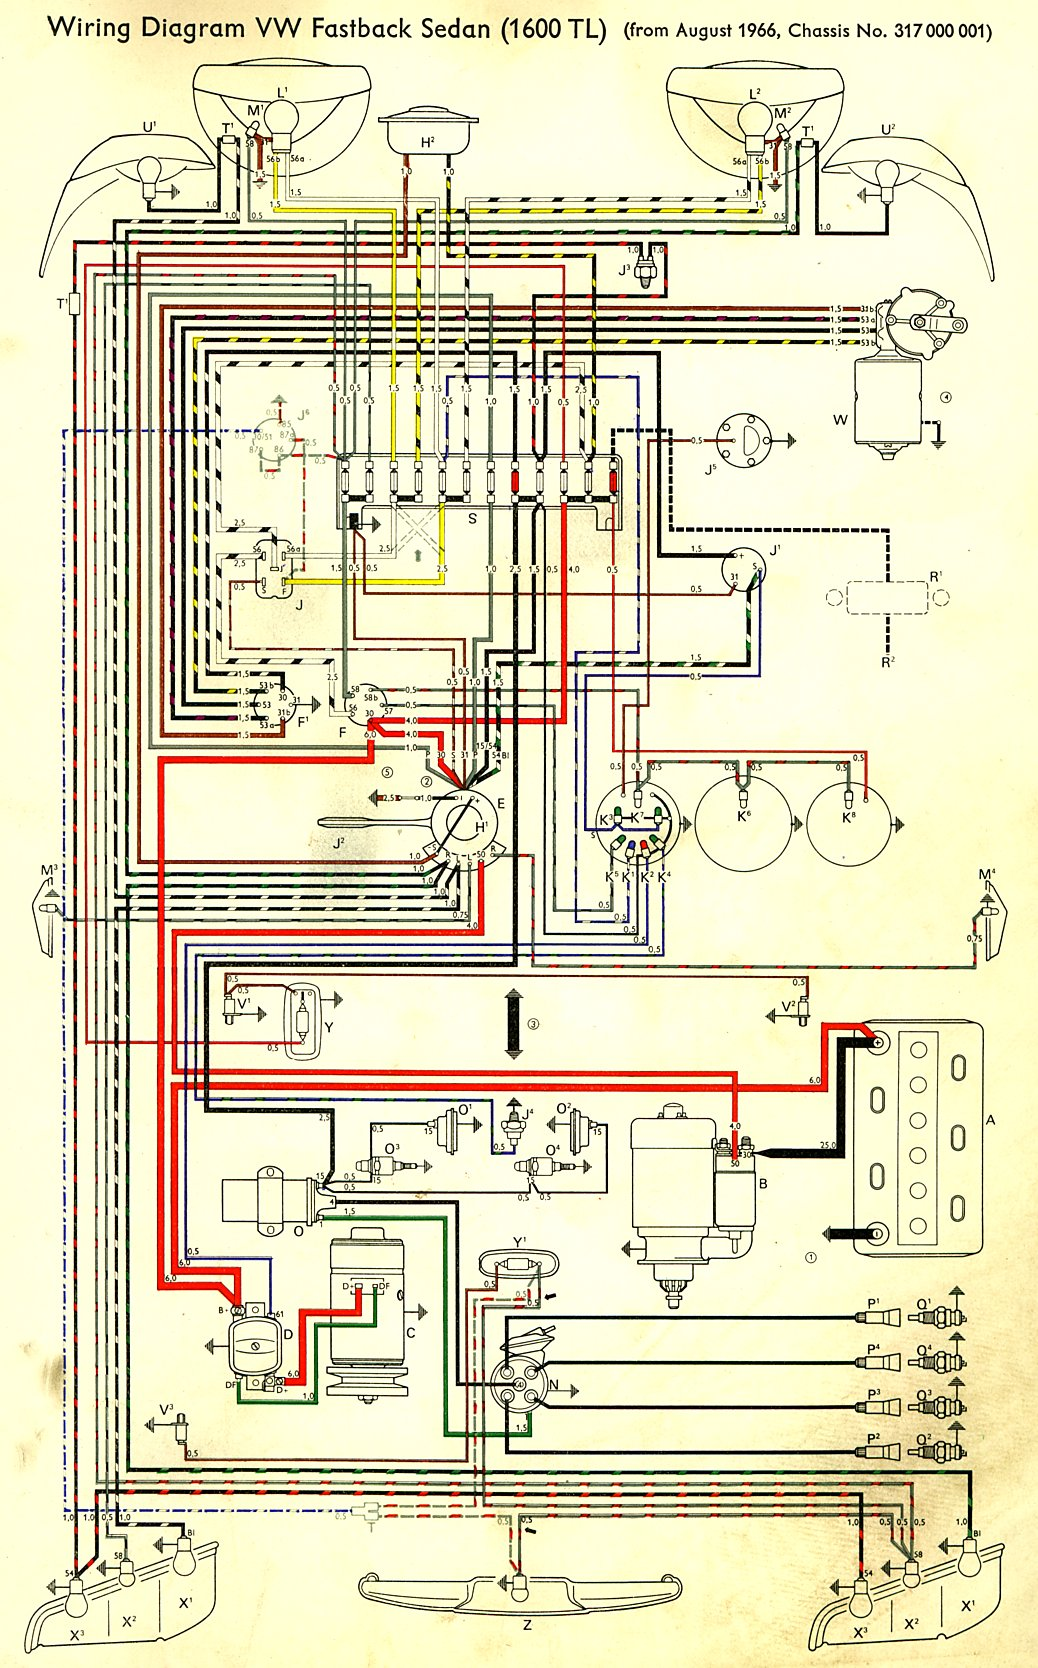 type3_1600TL_67 vw bus wiring diagram 1965 vw bus wiring diagram \u2022 wiring diagrams VW Alternator Hook Up at virtualis.co